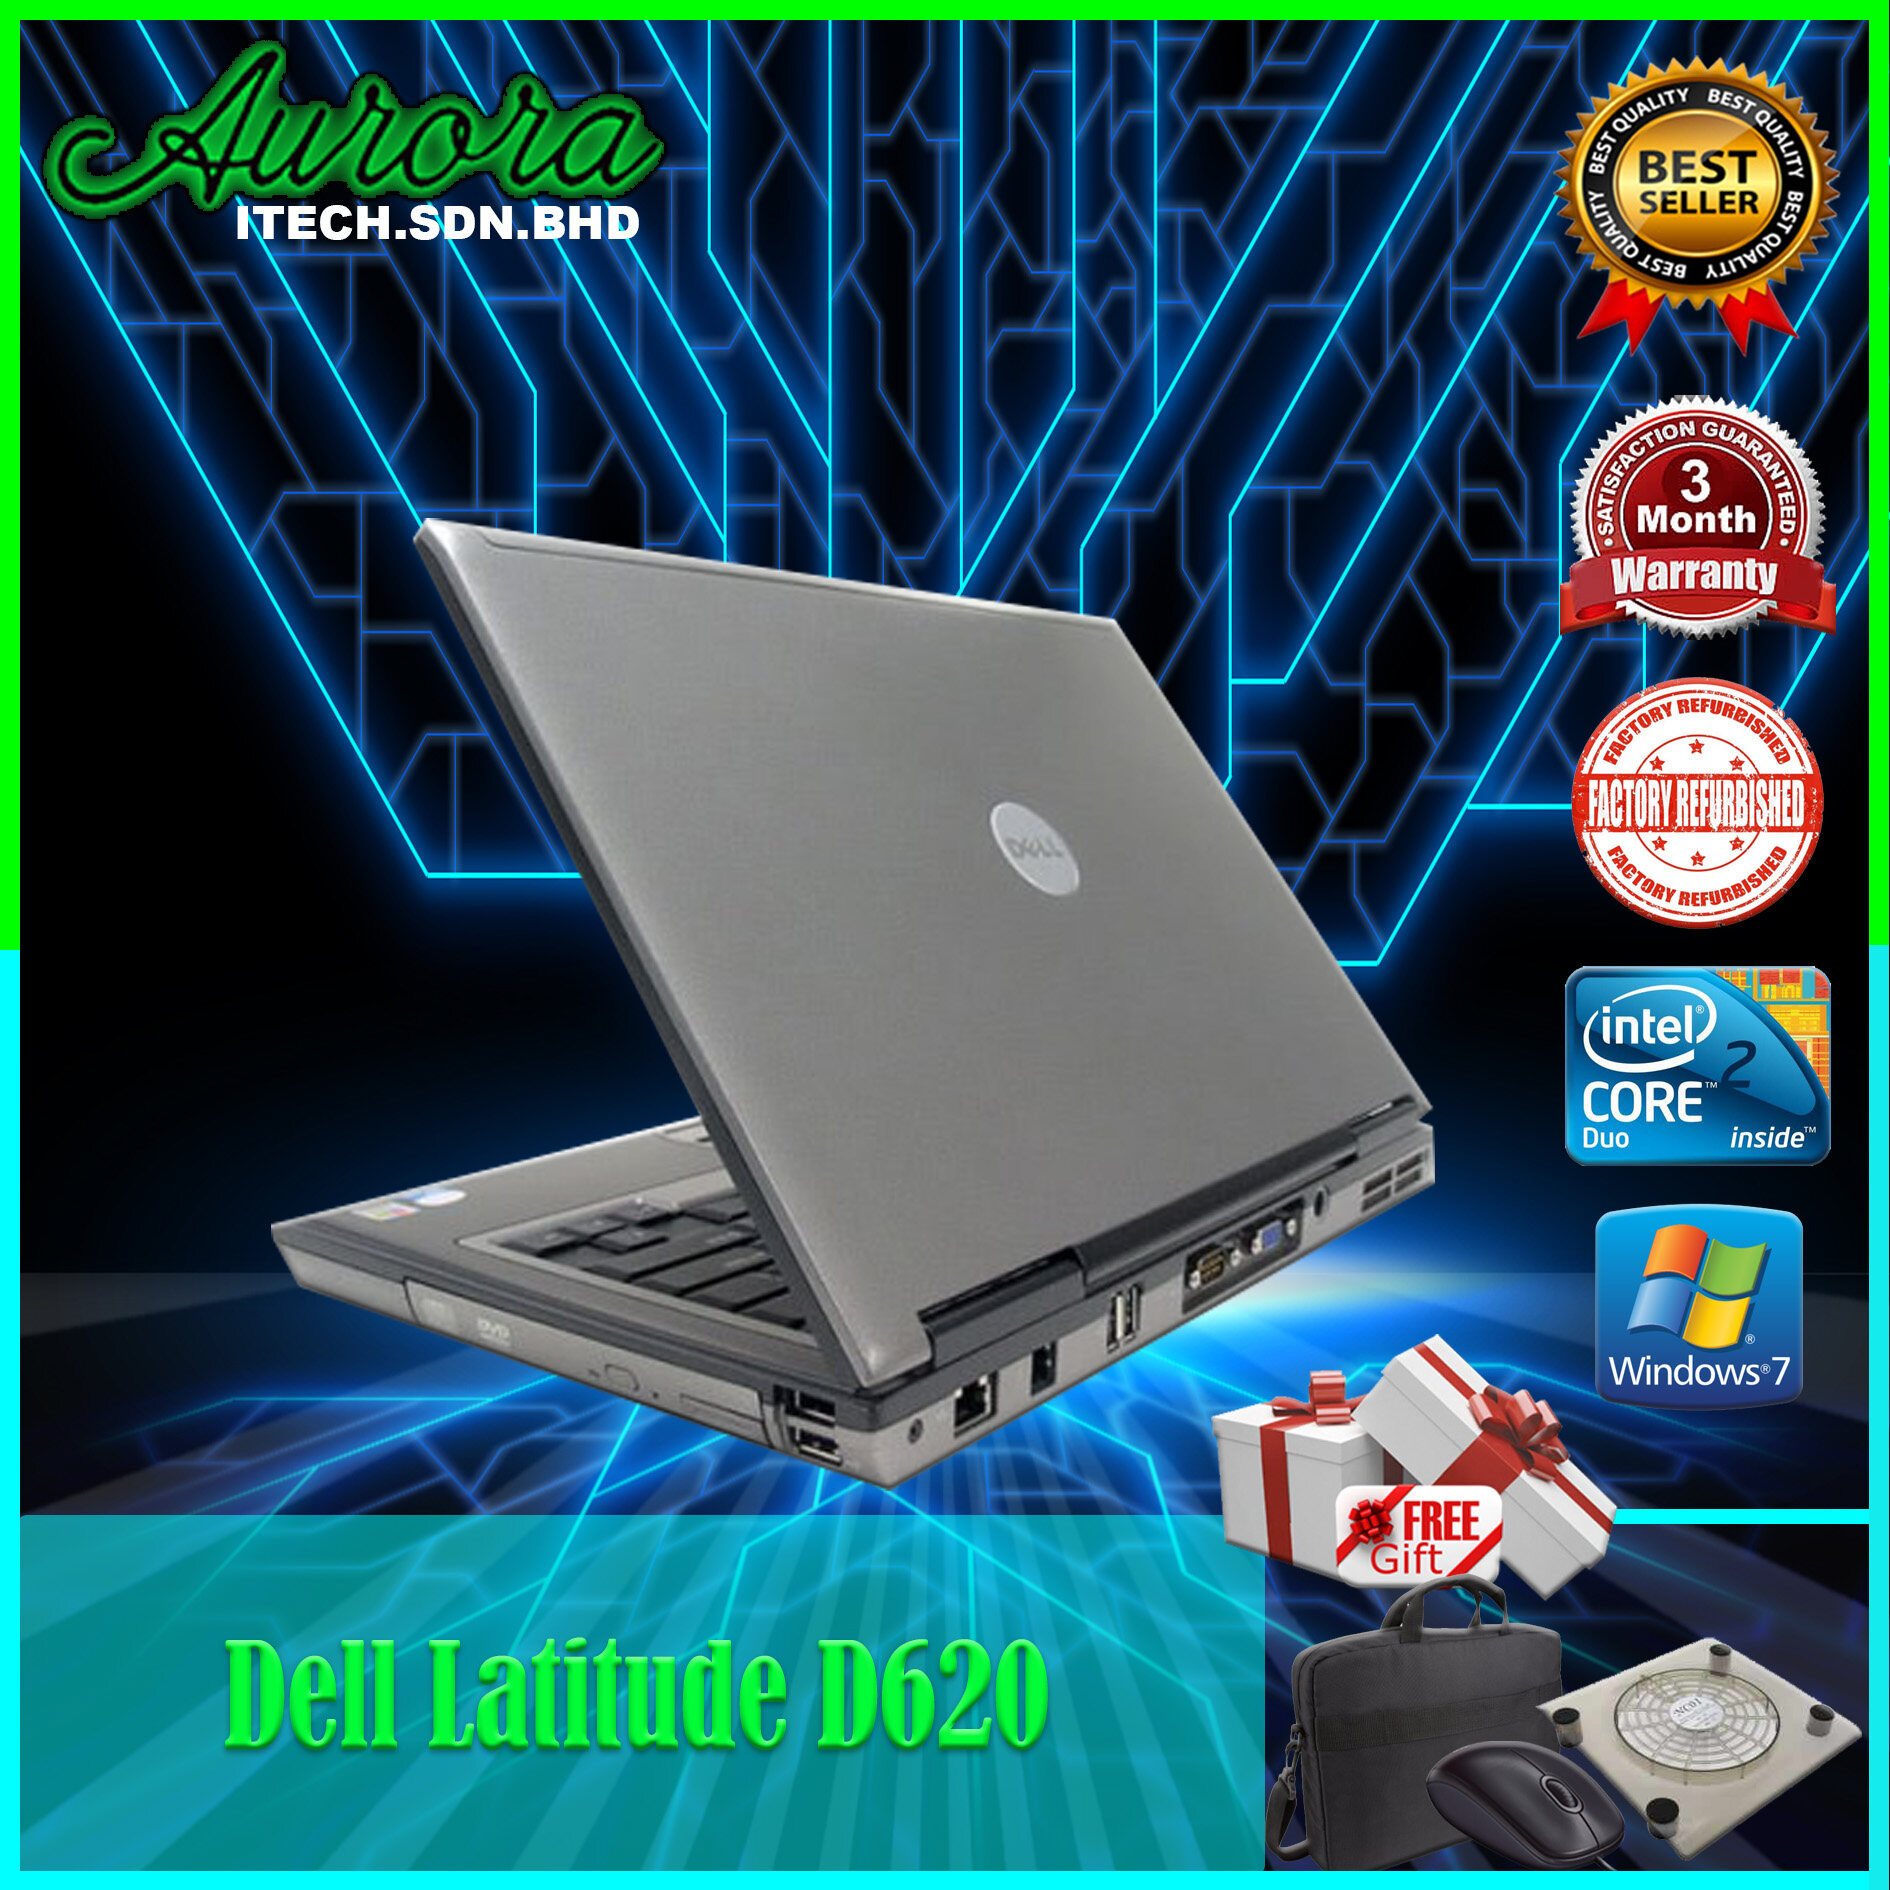 (REFURBISHED)DELL LATITUDE D620 / INTEL CORE 2 DUO T7250 / 2 GB DDR2 RAM / 80 GB SATA HDD / 14.1 INCH LCD / 3 Months Warranty Malaysia